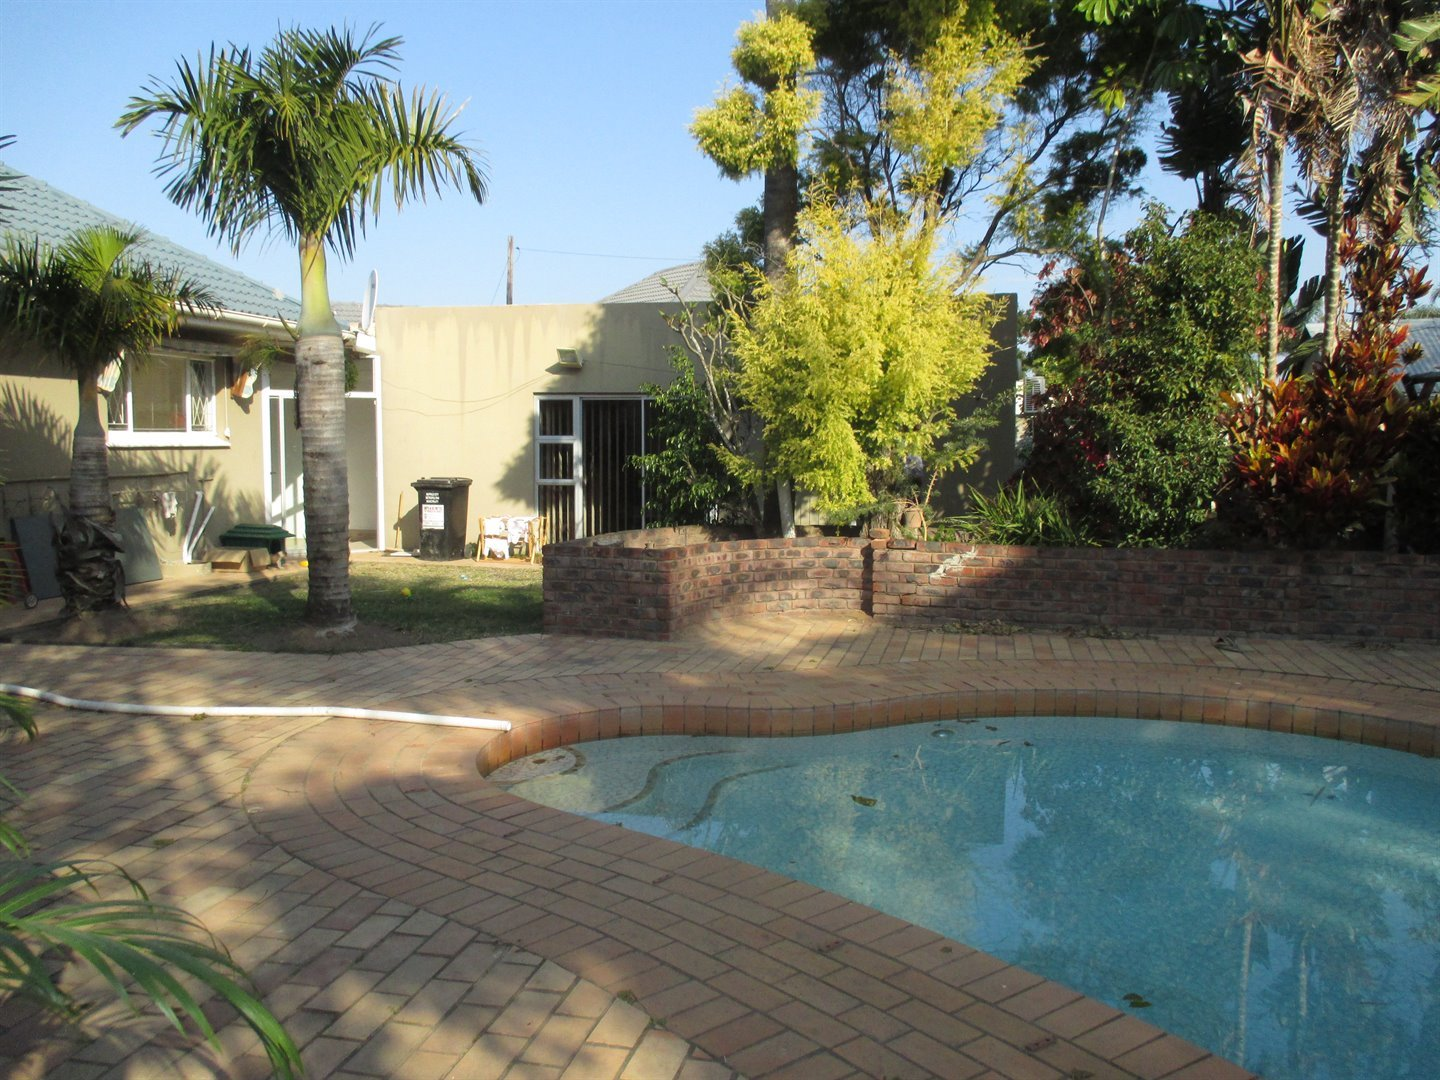 Property for Sale by DLC INC. ATTORNEYS Heinrich Ferreira, House, 3 Bedrooms - ZAR 1,550,000